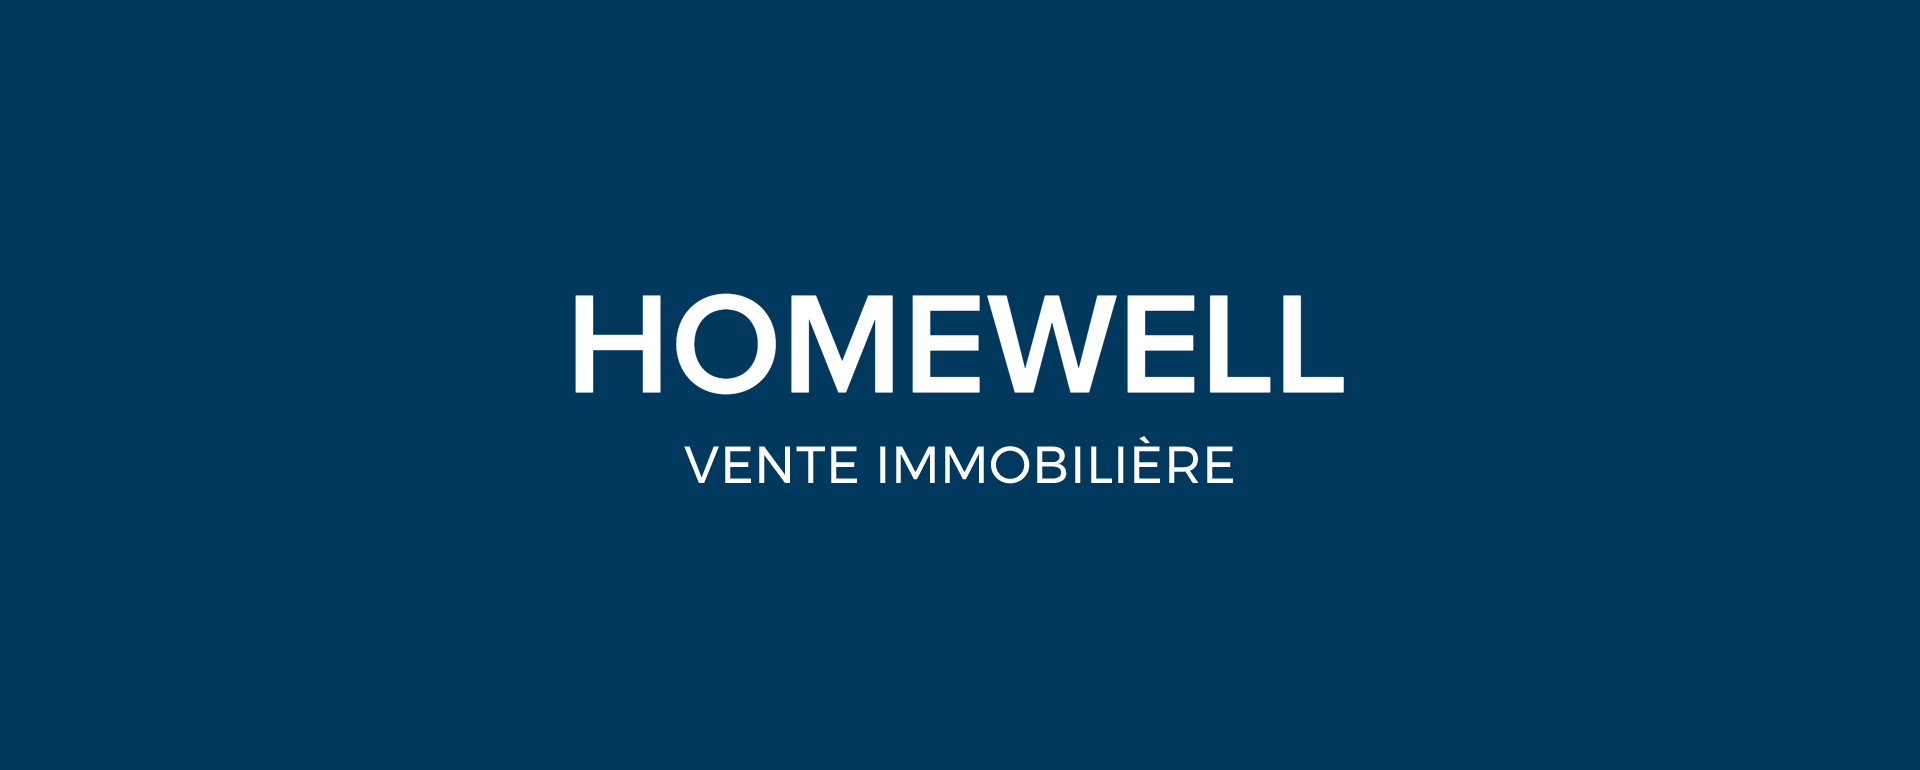 Agence immobilière Lausanne Vaud Homewell Agence Immobiliere Homewell Lausanne Vaud Vente Maison Appartement front